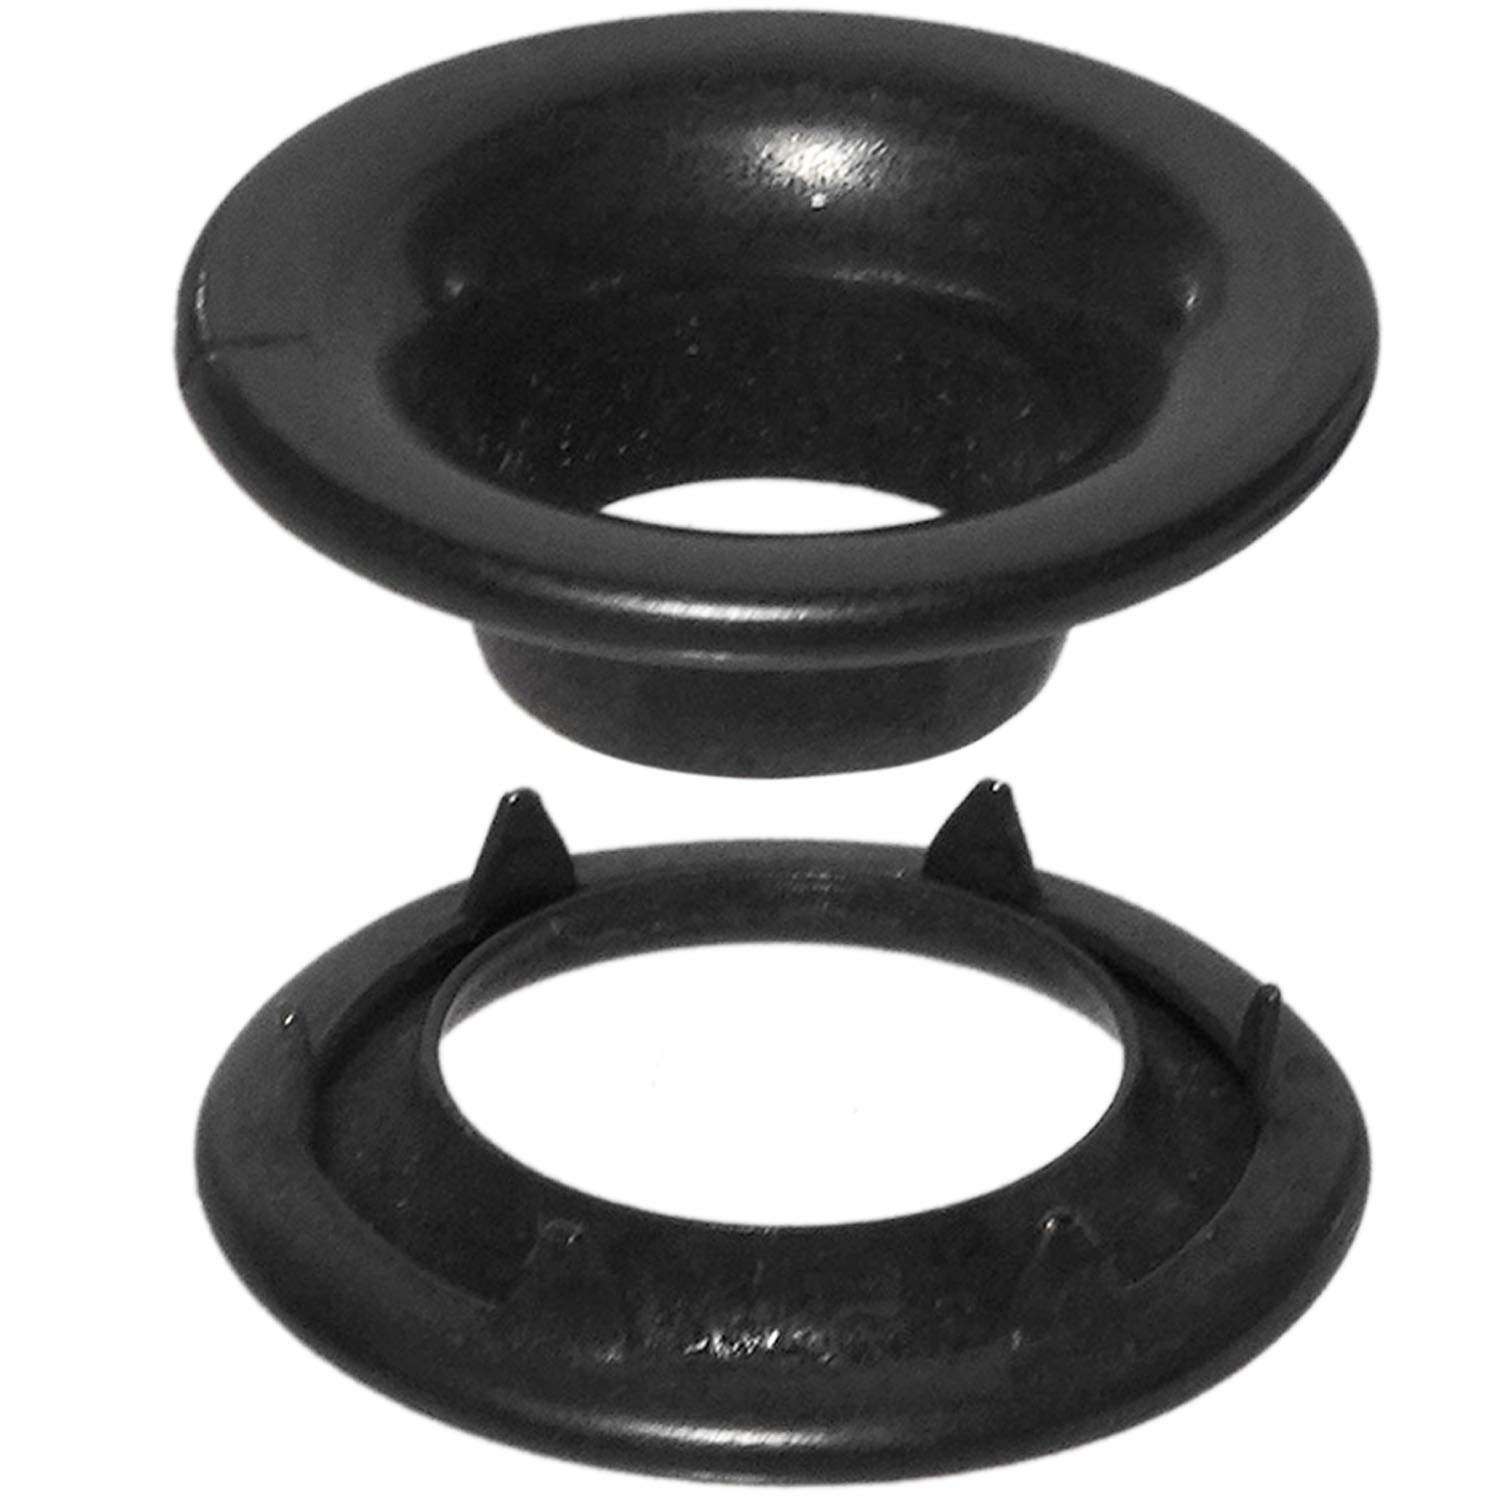 Stimpson Rolled Rim Grommet and Spur Washer Dull Black Chem Durable, Reliable, Heavy-Duty #1 Set (720 Pieces of Each)